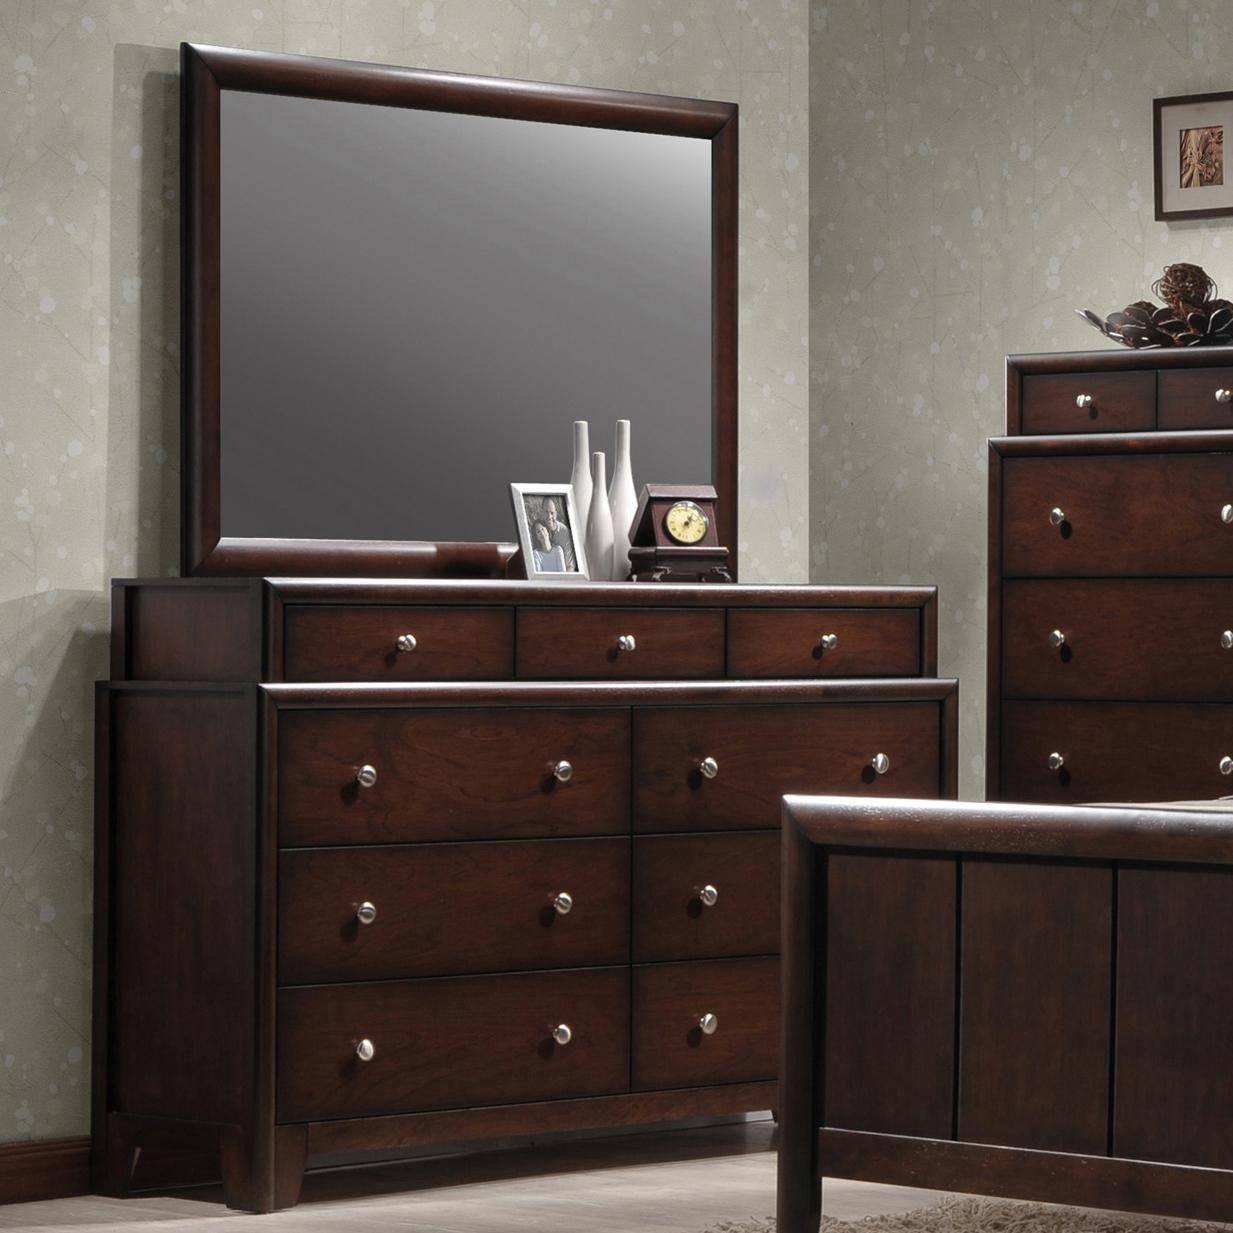 Crown Mark Rivoli Dresser and Mirror Combination - Item Number: B6875-1+11